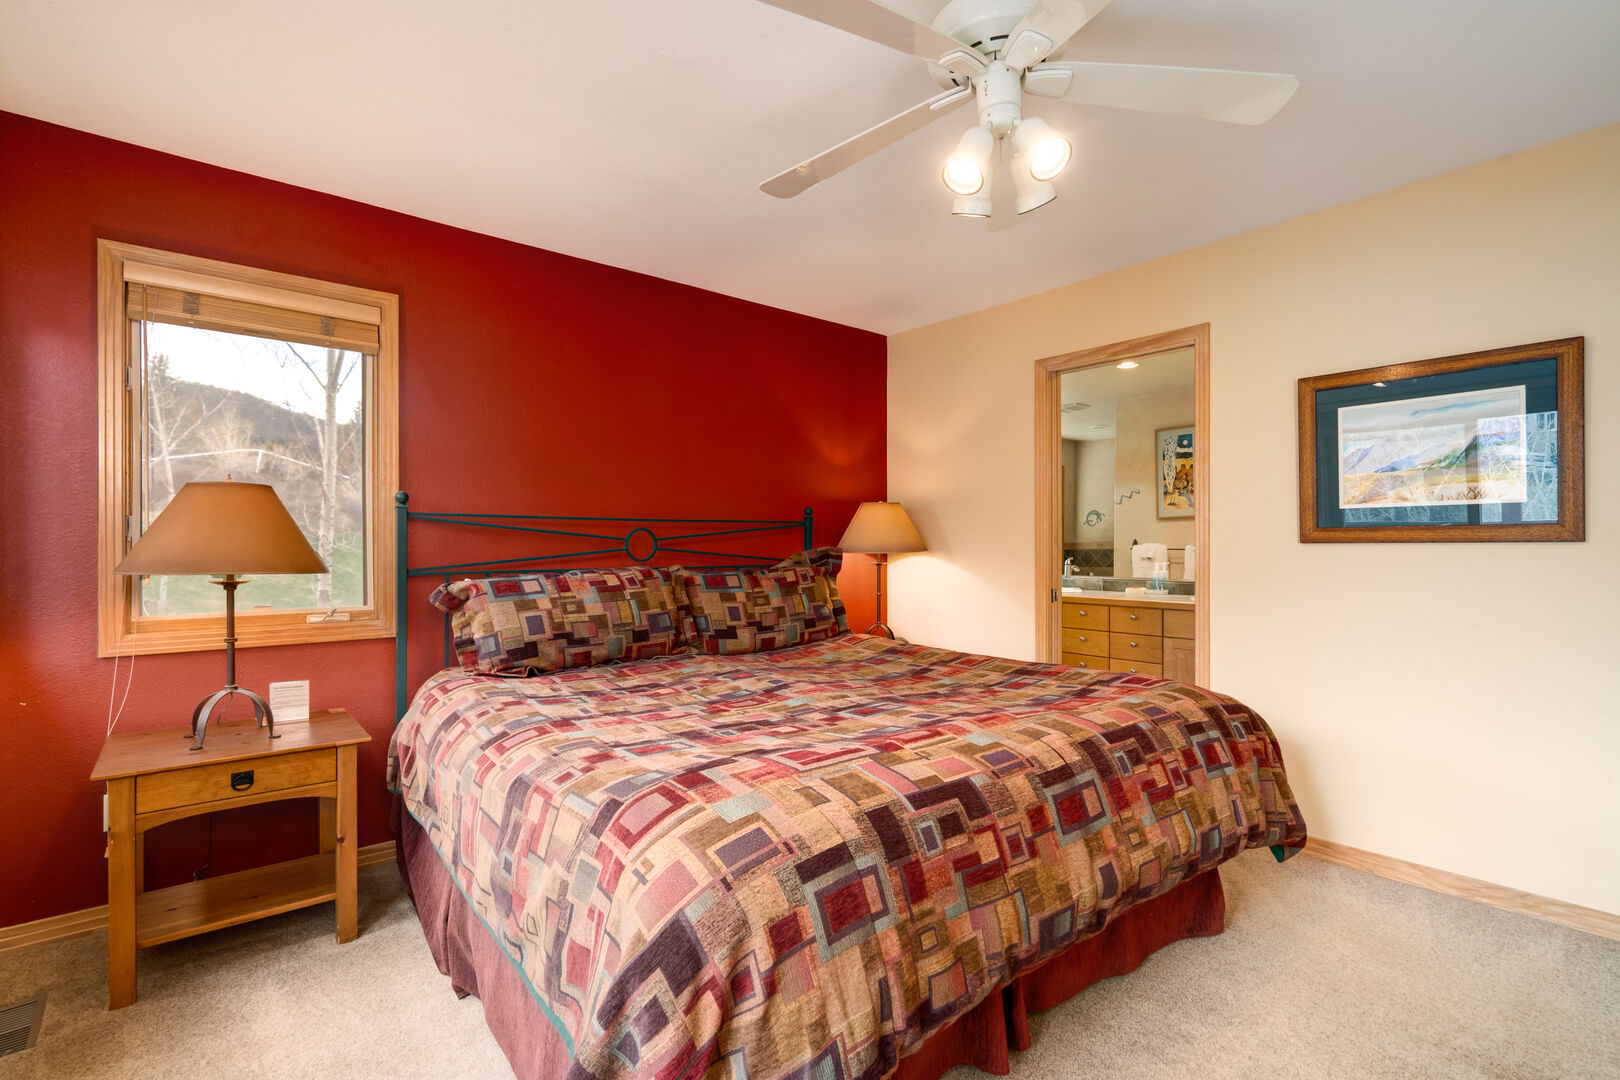 Ceiling fan in the master bedroom to keep you cooled off in the summer months